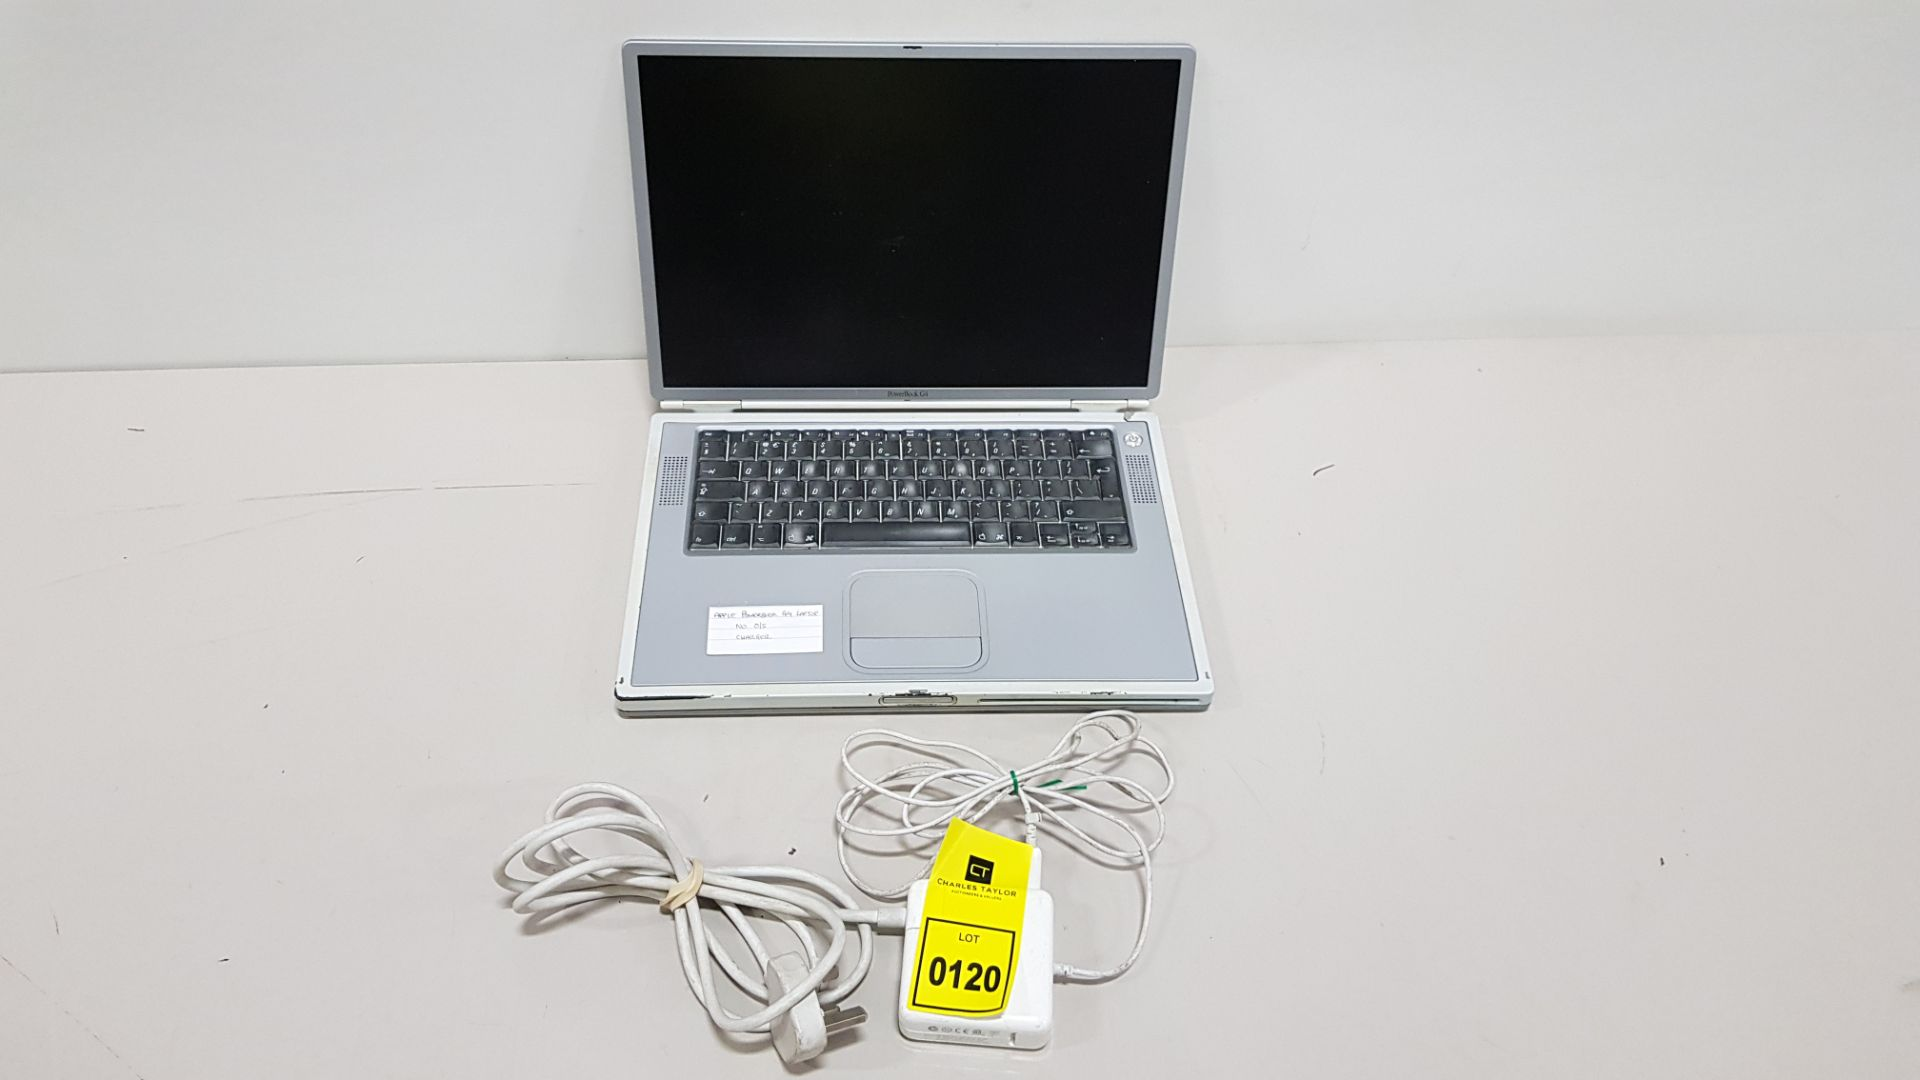 APPLE POWERBOOK G4 LAPTOP NO O/S - WITH CHARGER